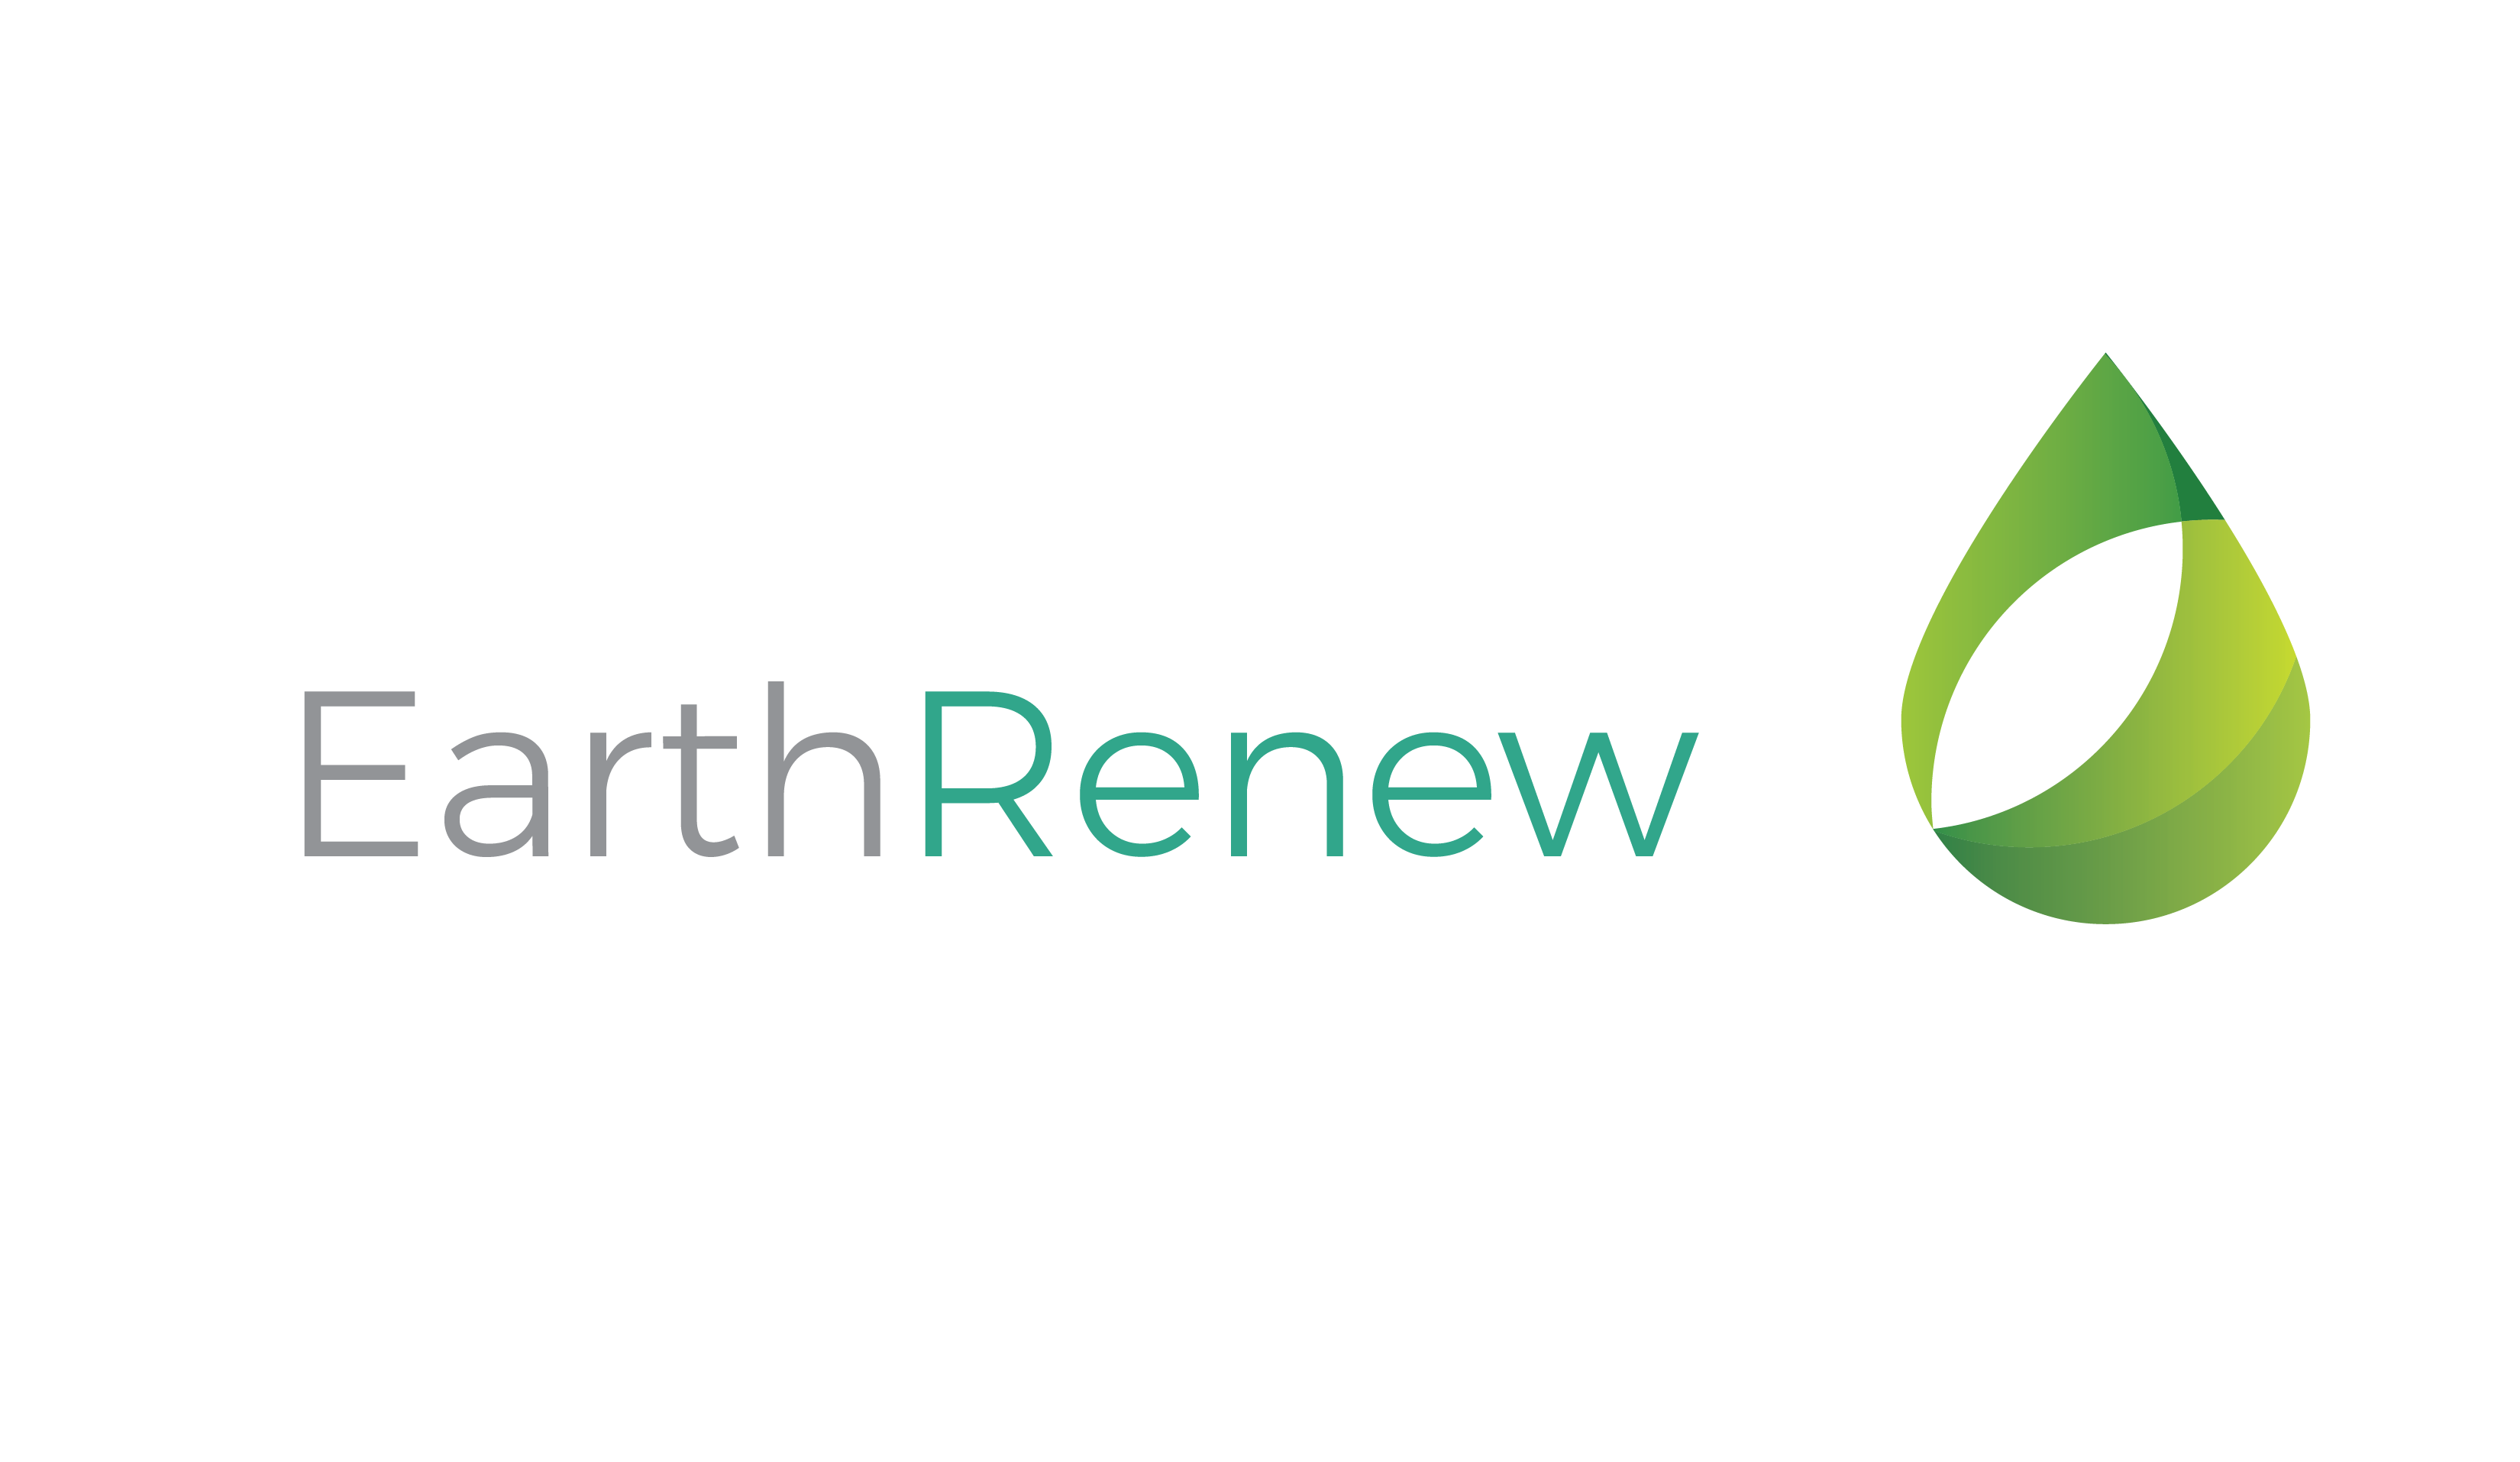 EarthRenew Signs Power Purchase Agreement With a Third Party for Up to 3